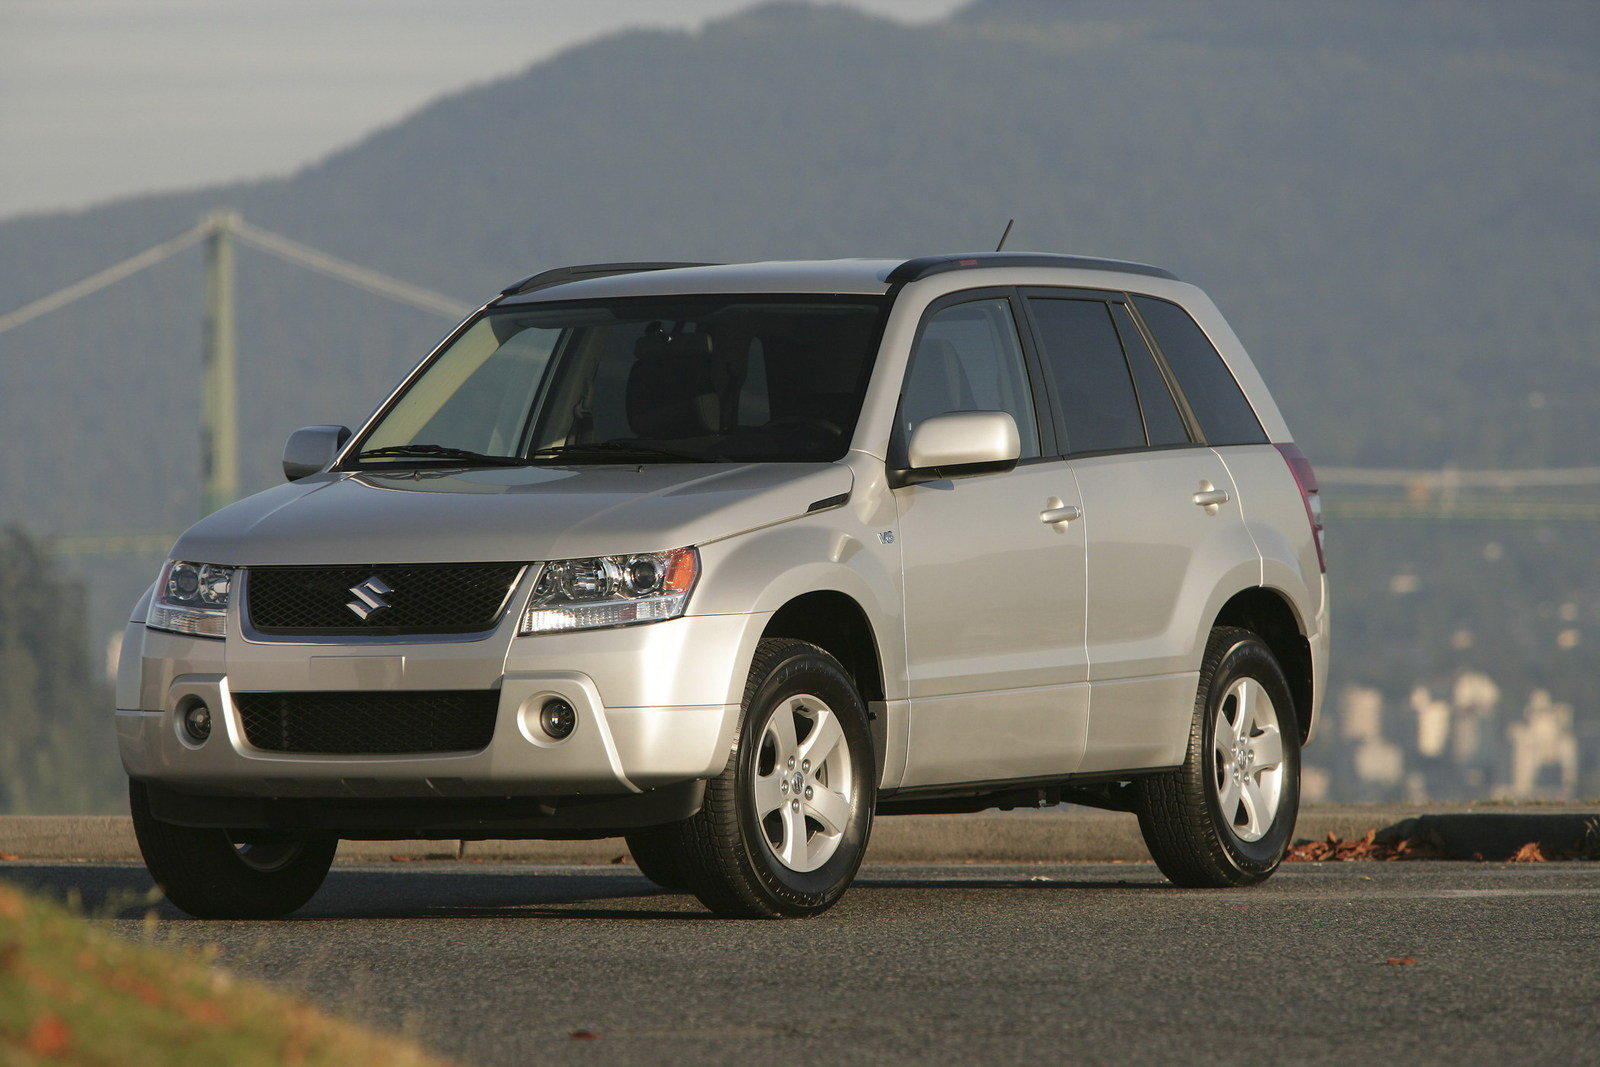 2006 Suzuki Grand Vitara Review